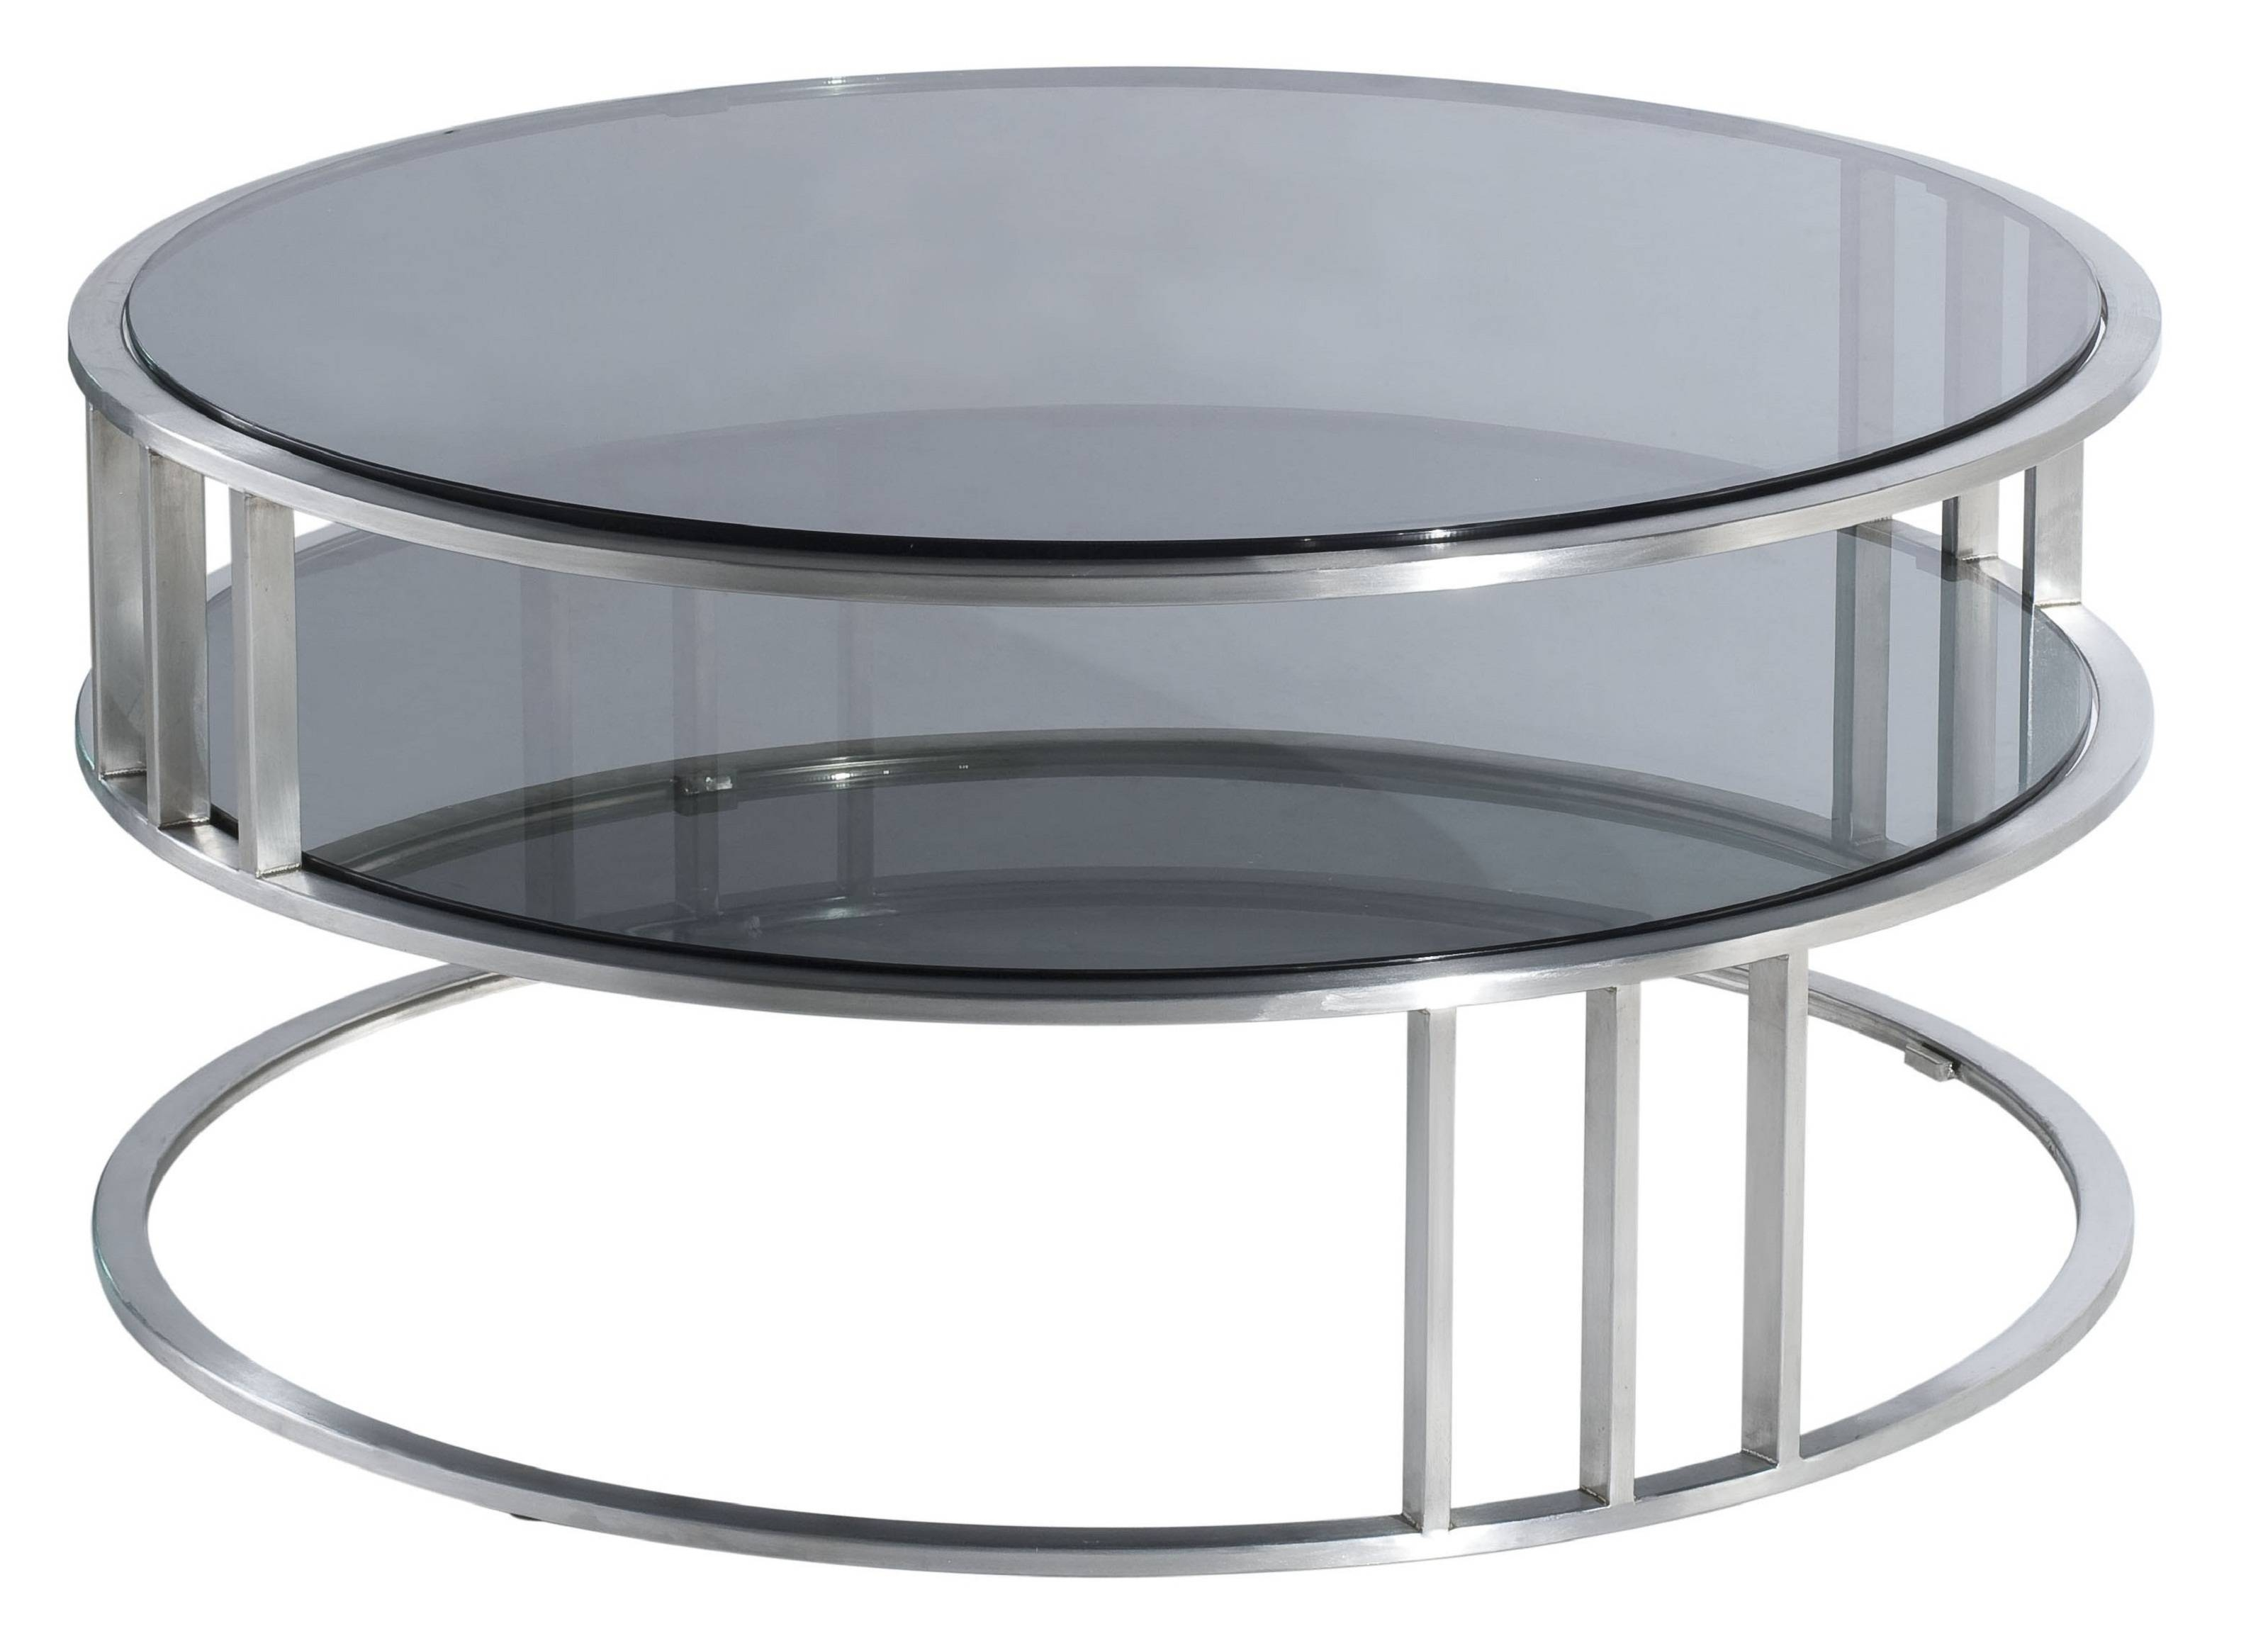 Round Coffee Table Tray. Coffee Table Ottoman With Storage Fresh pertaining to Round Chrome Coffee Tables (Image 24 of 30)